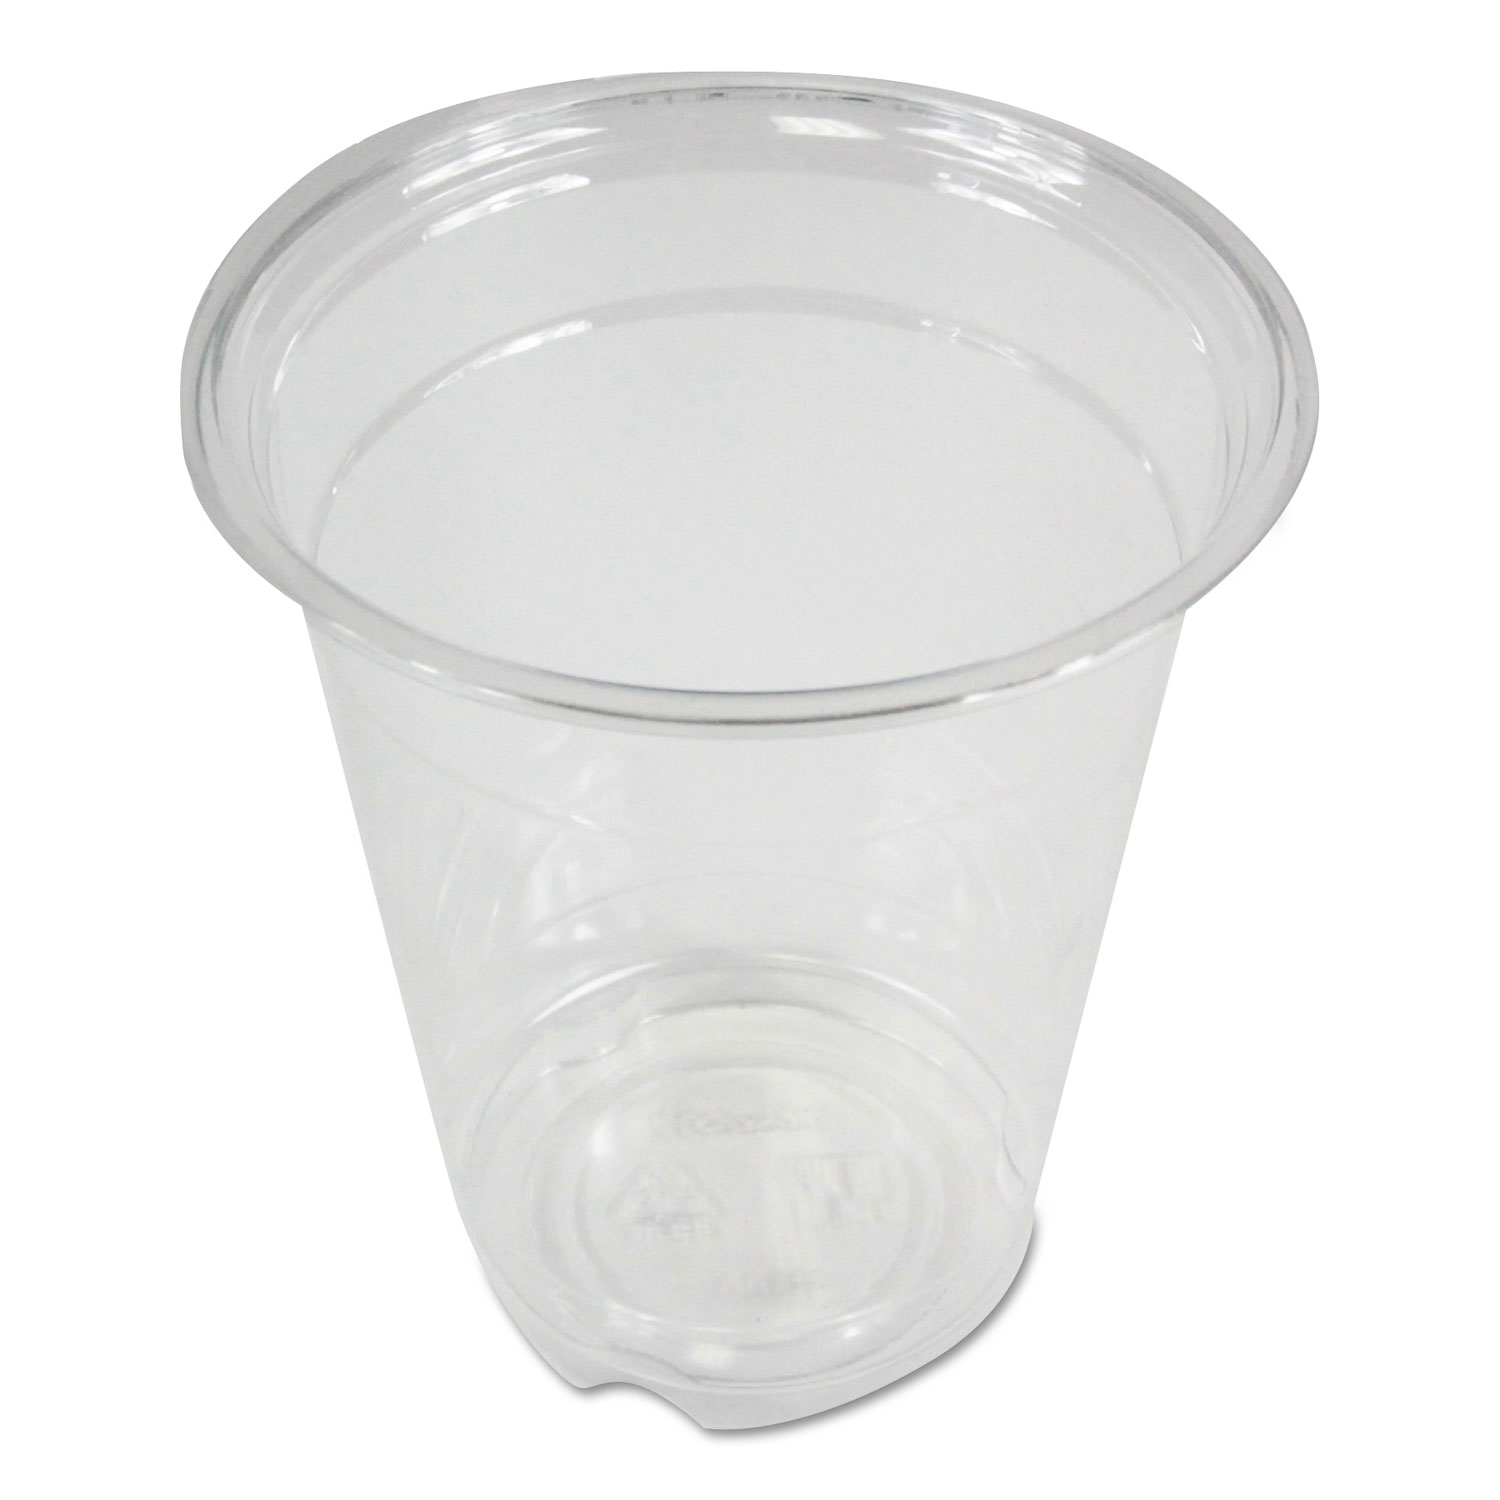 Clear Plastic Cold Cups, 12 oz, PET, 20 Cups/Sleeve, 50 Sleeves/Carton